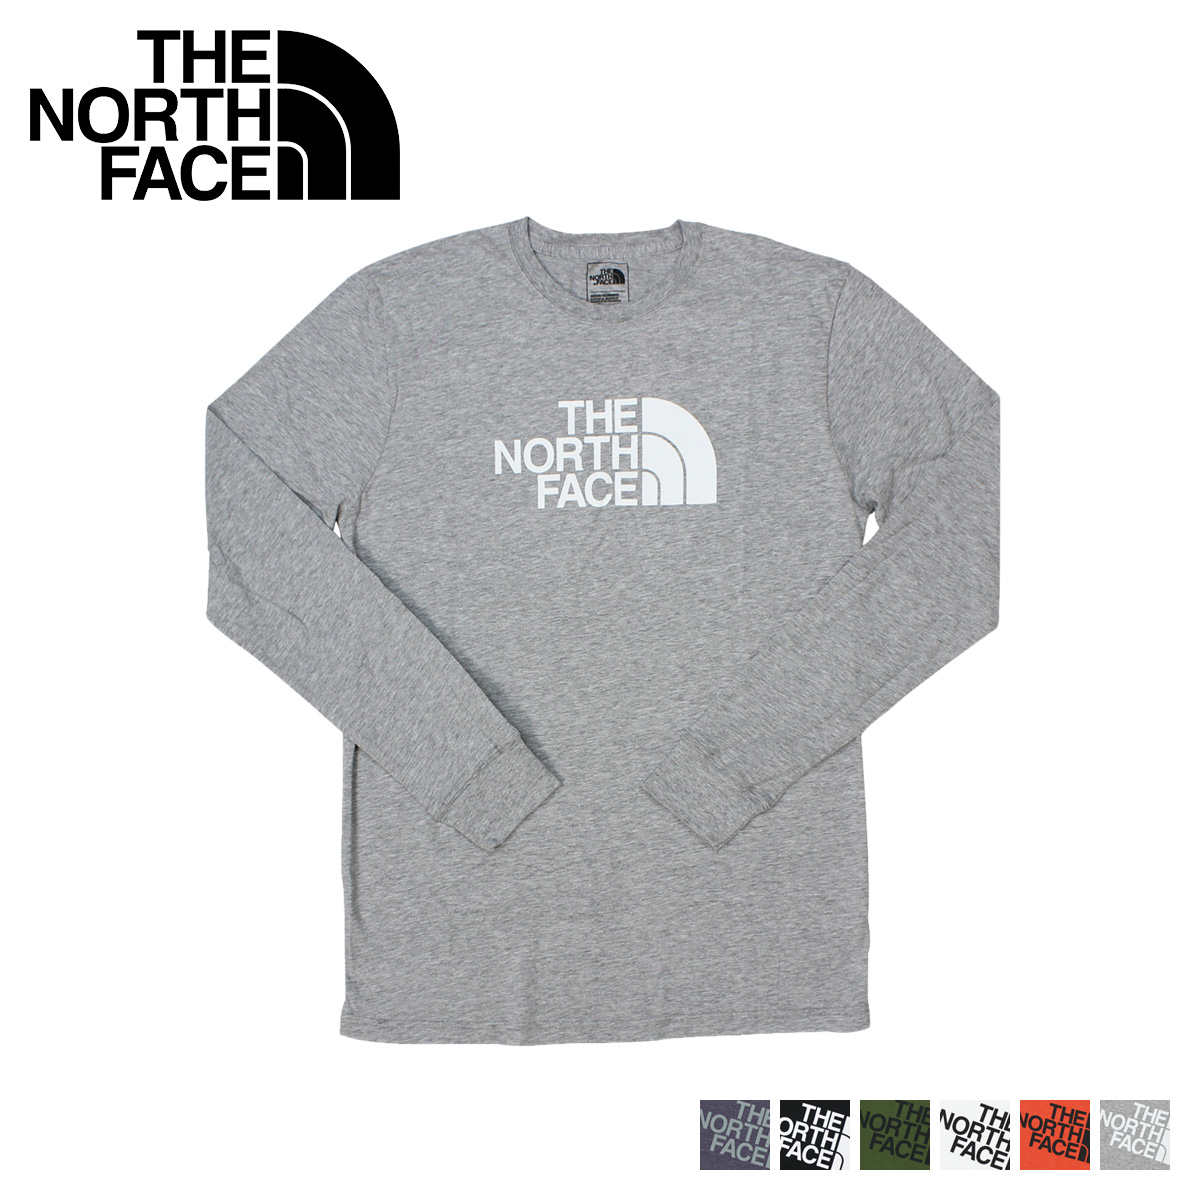 89fbf69a0 THE NORTH FACE north face T shirt Ron T long sleeve MEN'S LONG-SLEEVE HALF  DOME TEE men